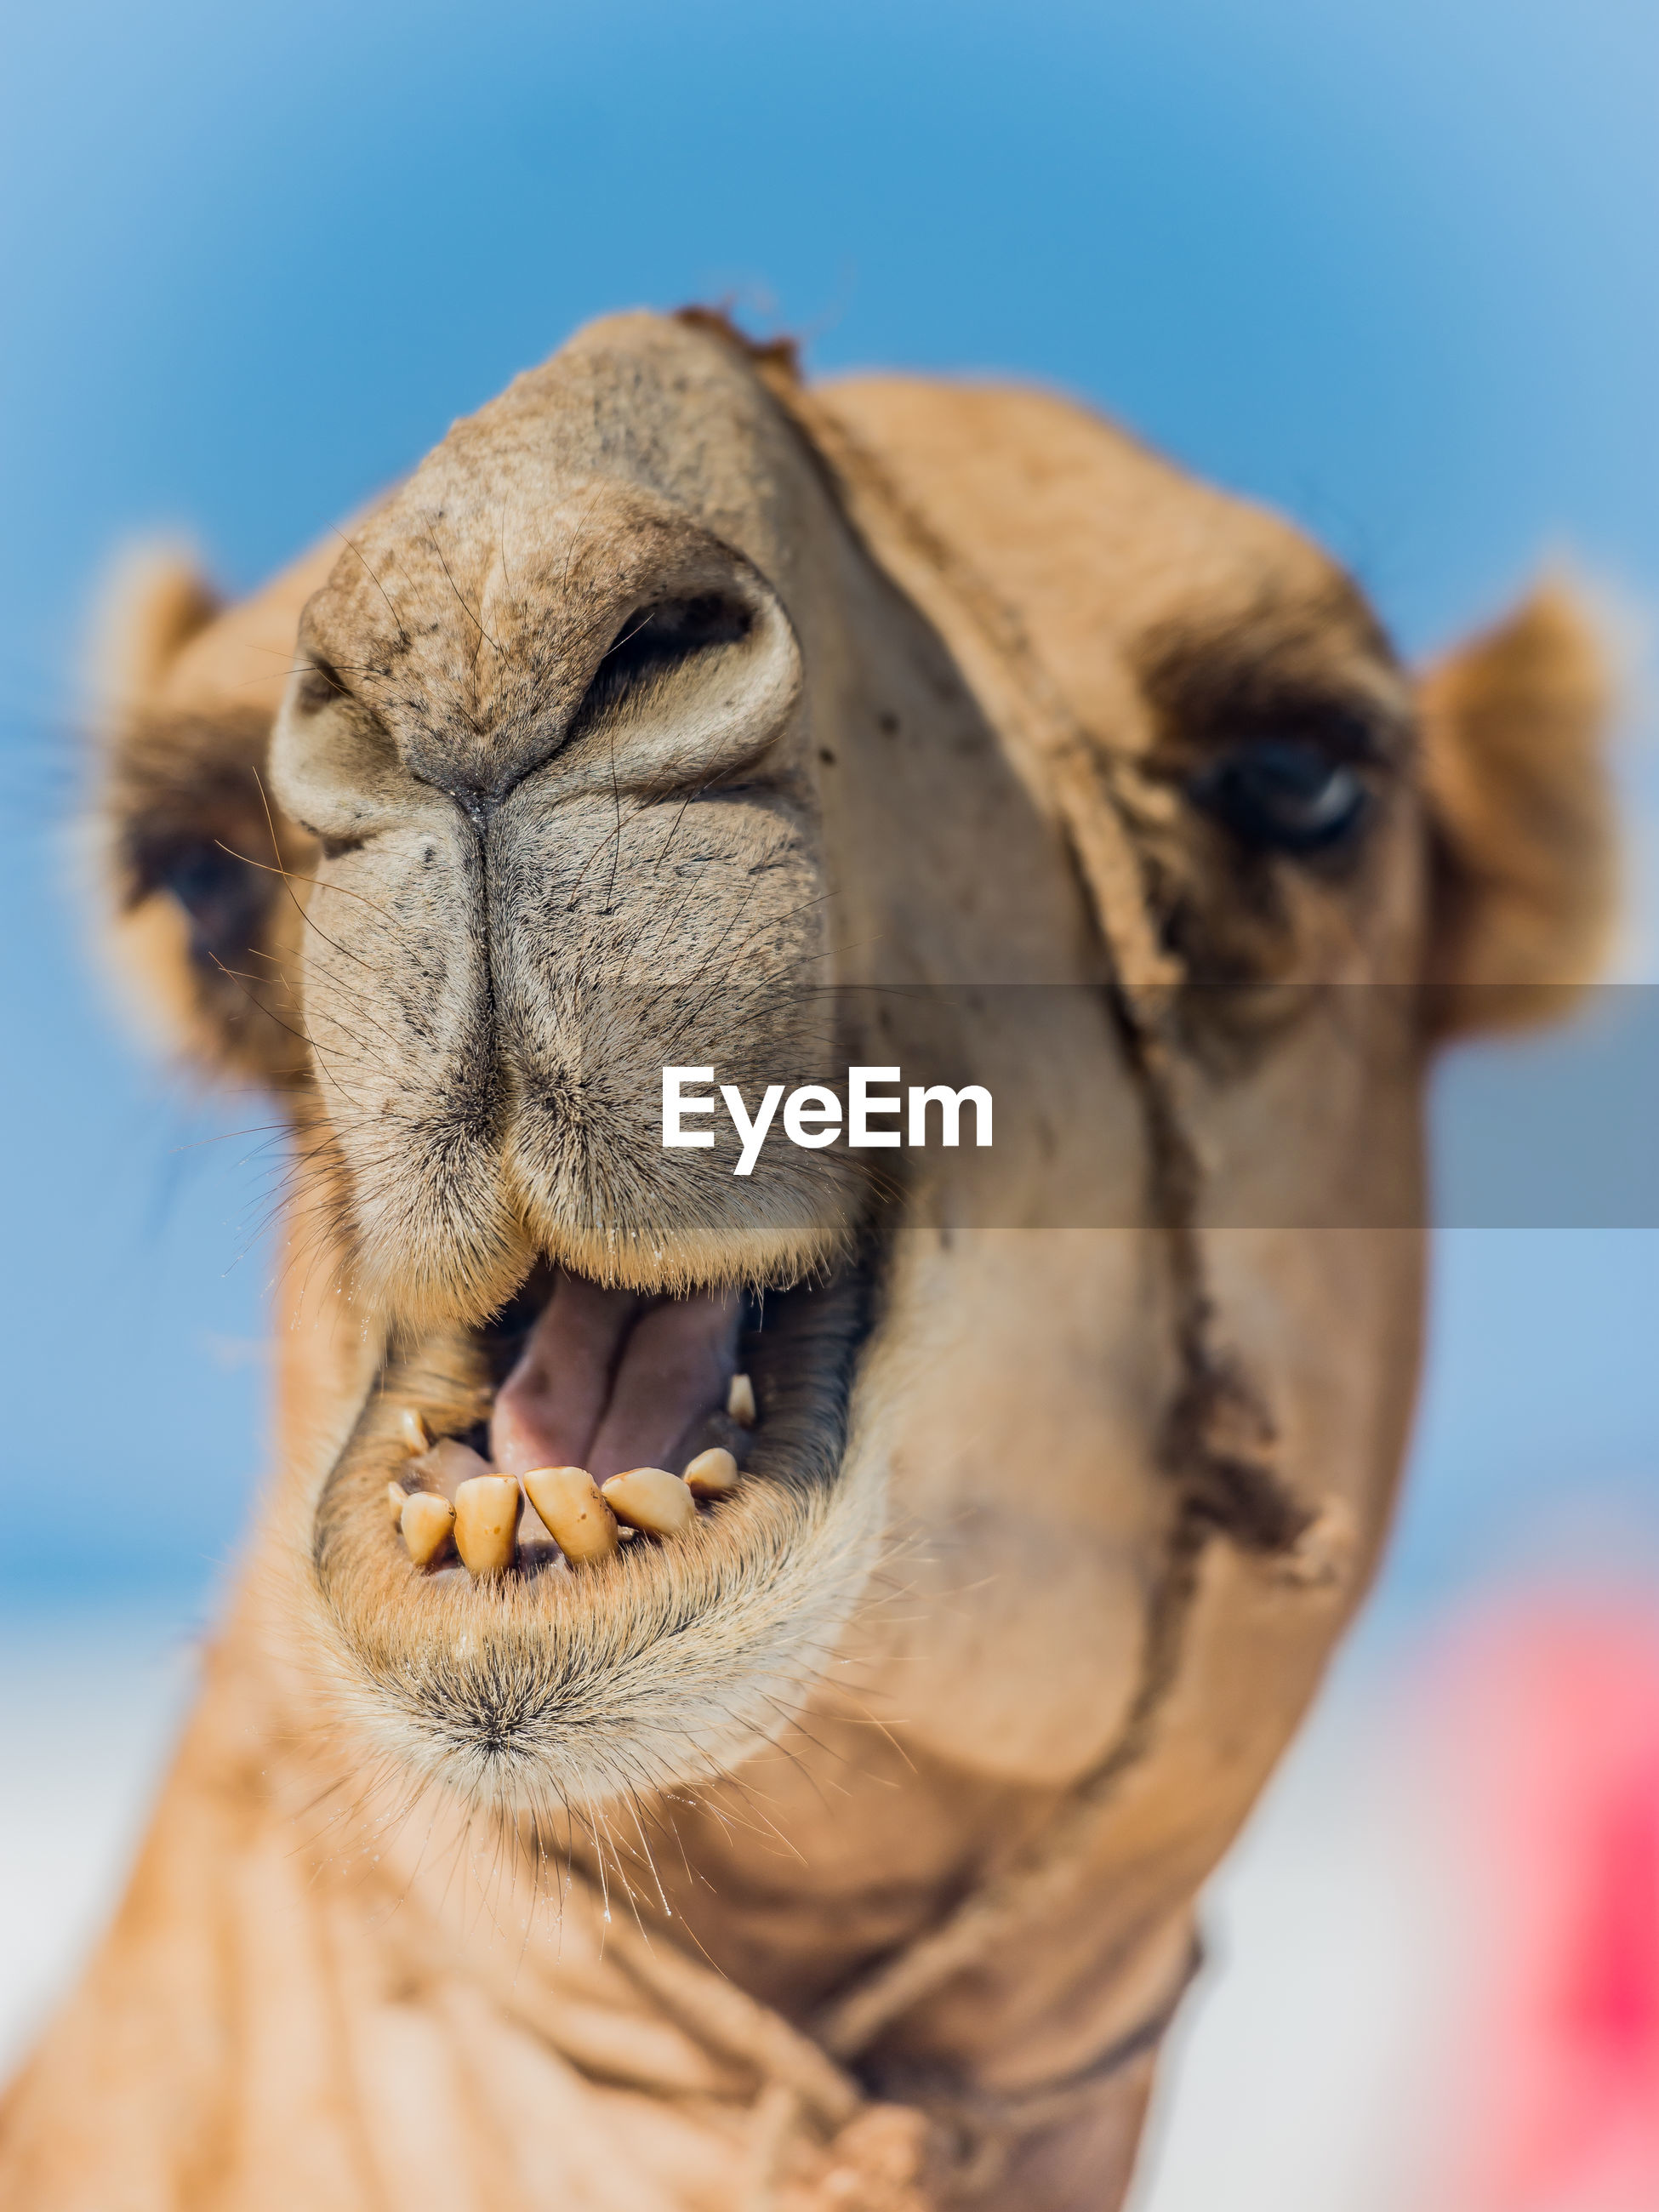 Close-up of camel with mouth open against sky